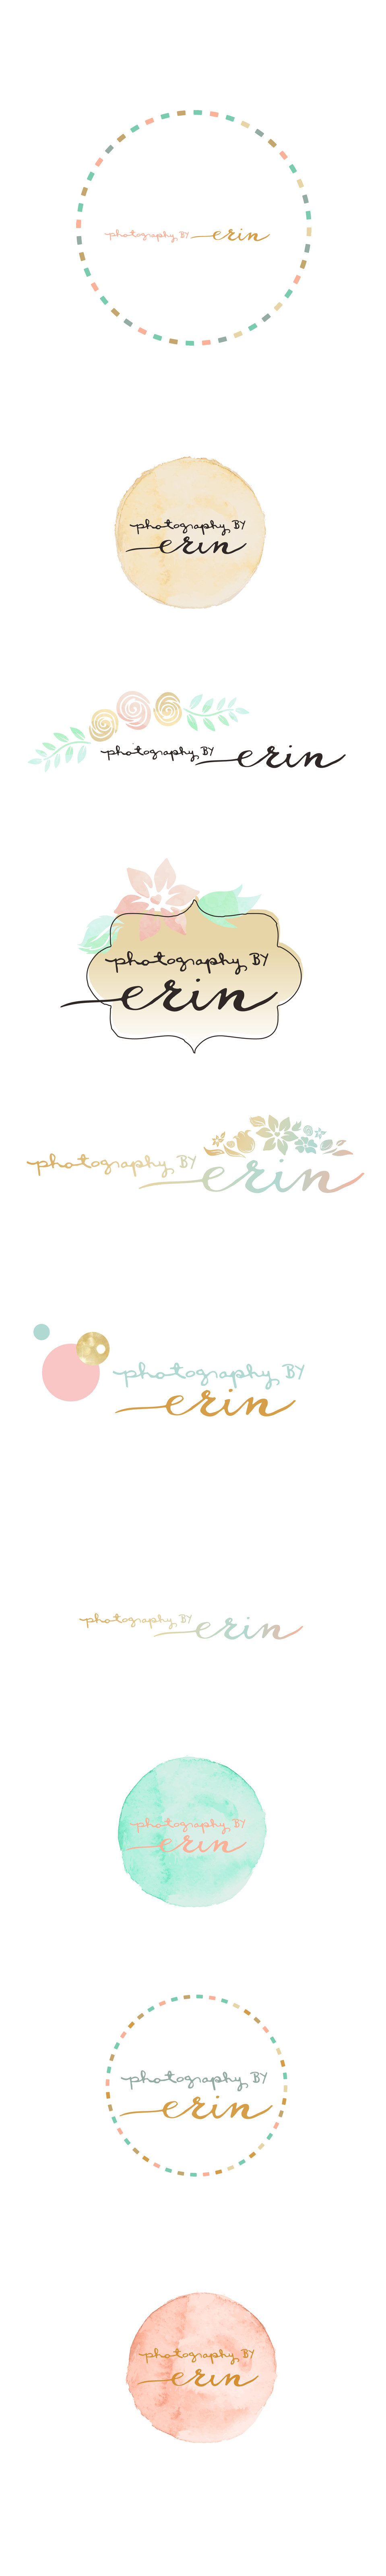 Photography by Erin logo concept design rose, gold, mint, handwriting, watercolor, hand drawn, grey,